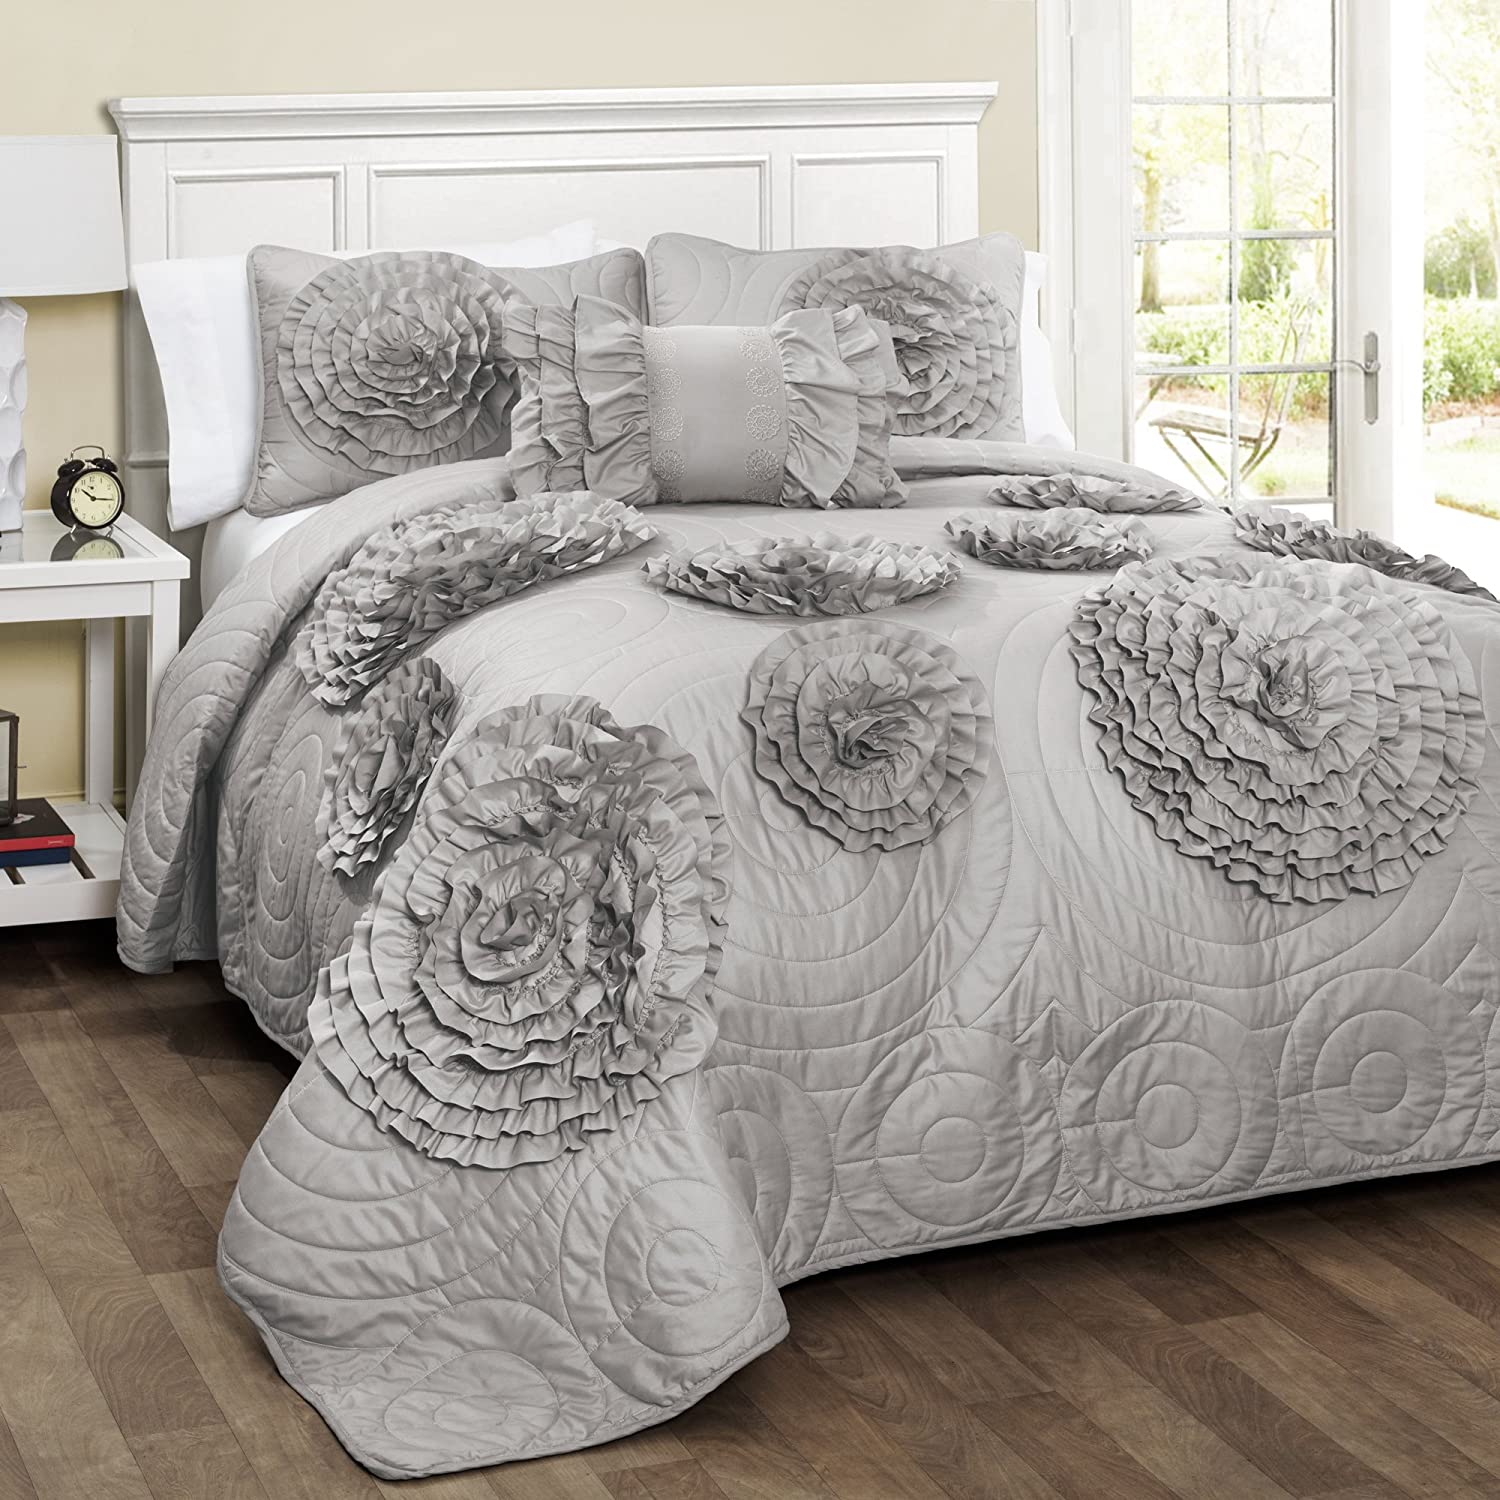 amazoncom lush decor t  piece fiorella quilt white set  - amazoncom lush decor t  piece fiorella quilt white setfullqueen white home  kitchen